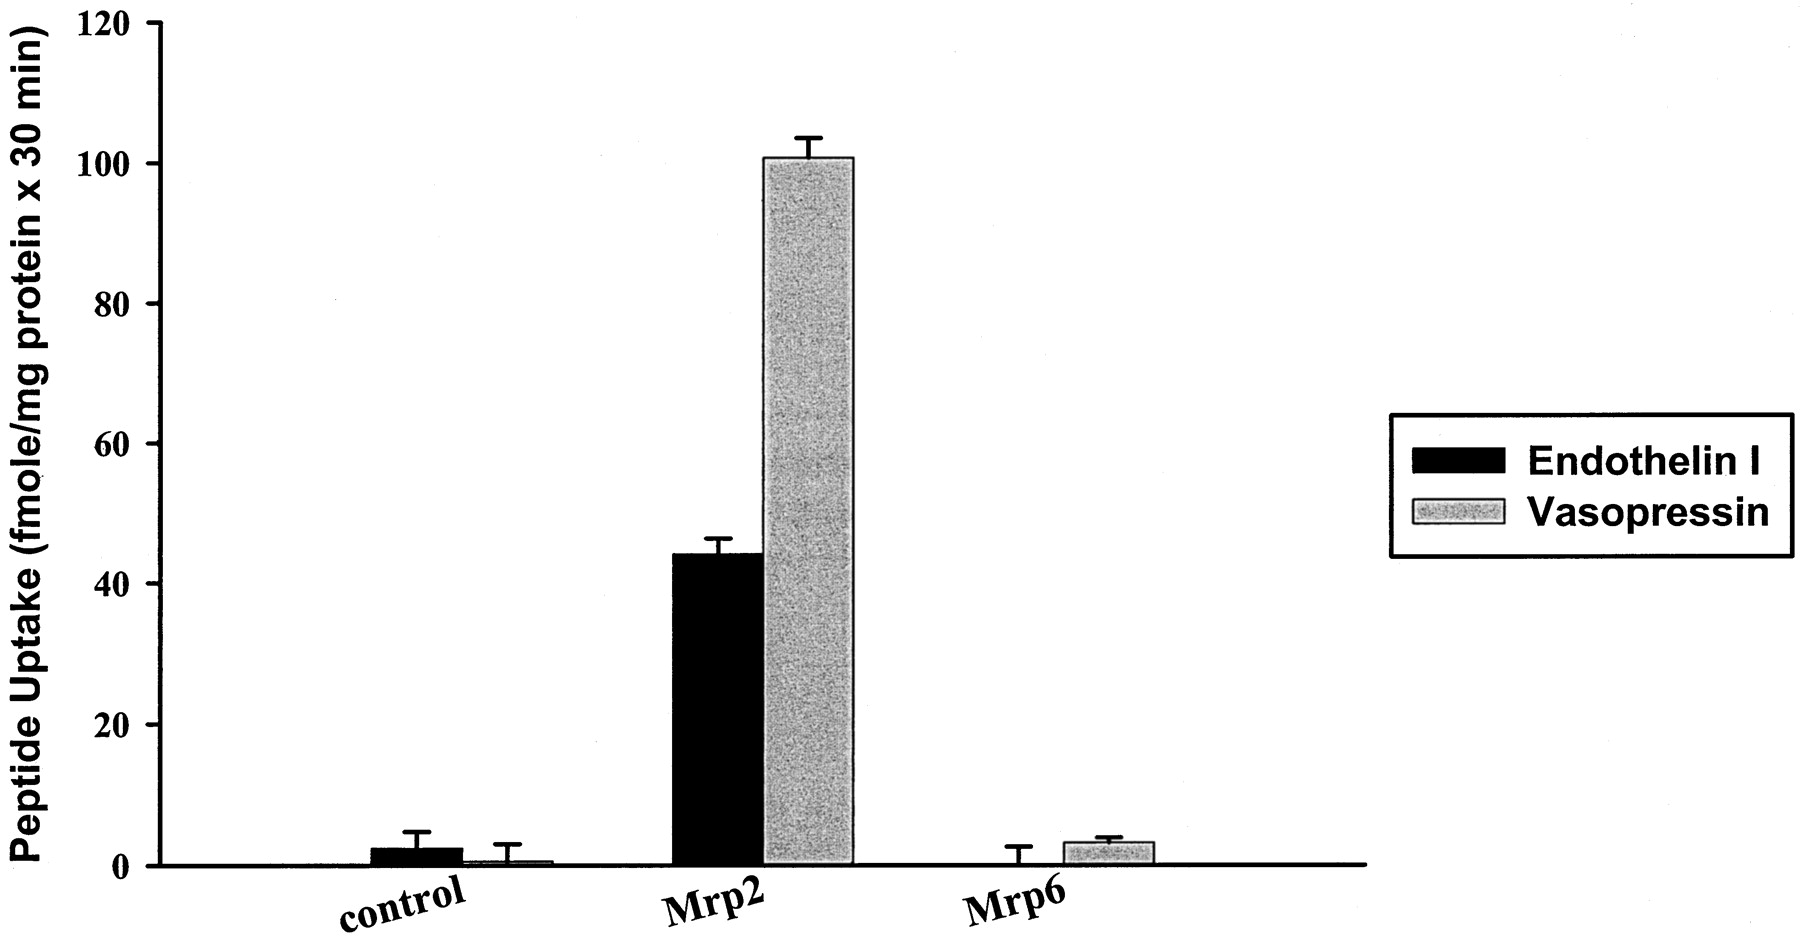 Transport Function and Hepatocellular Localization of mrp6